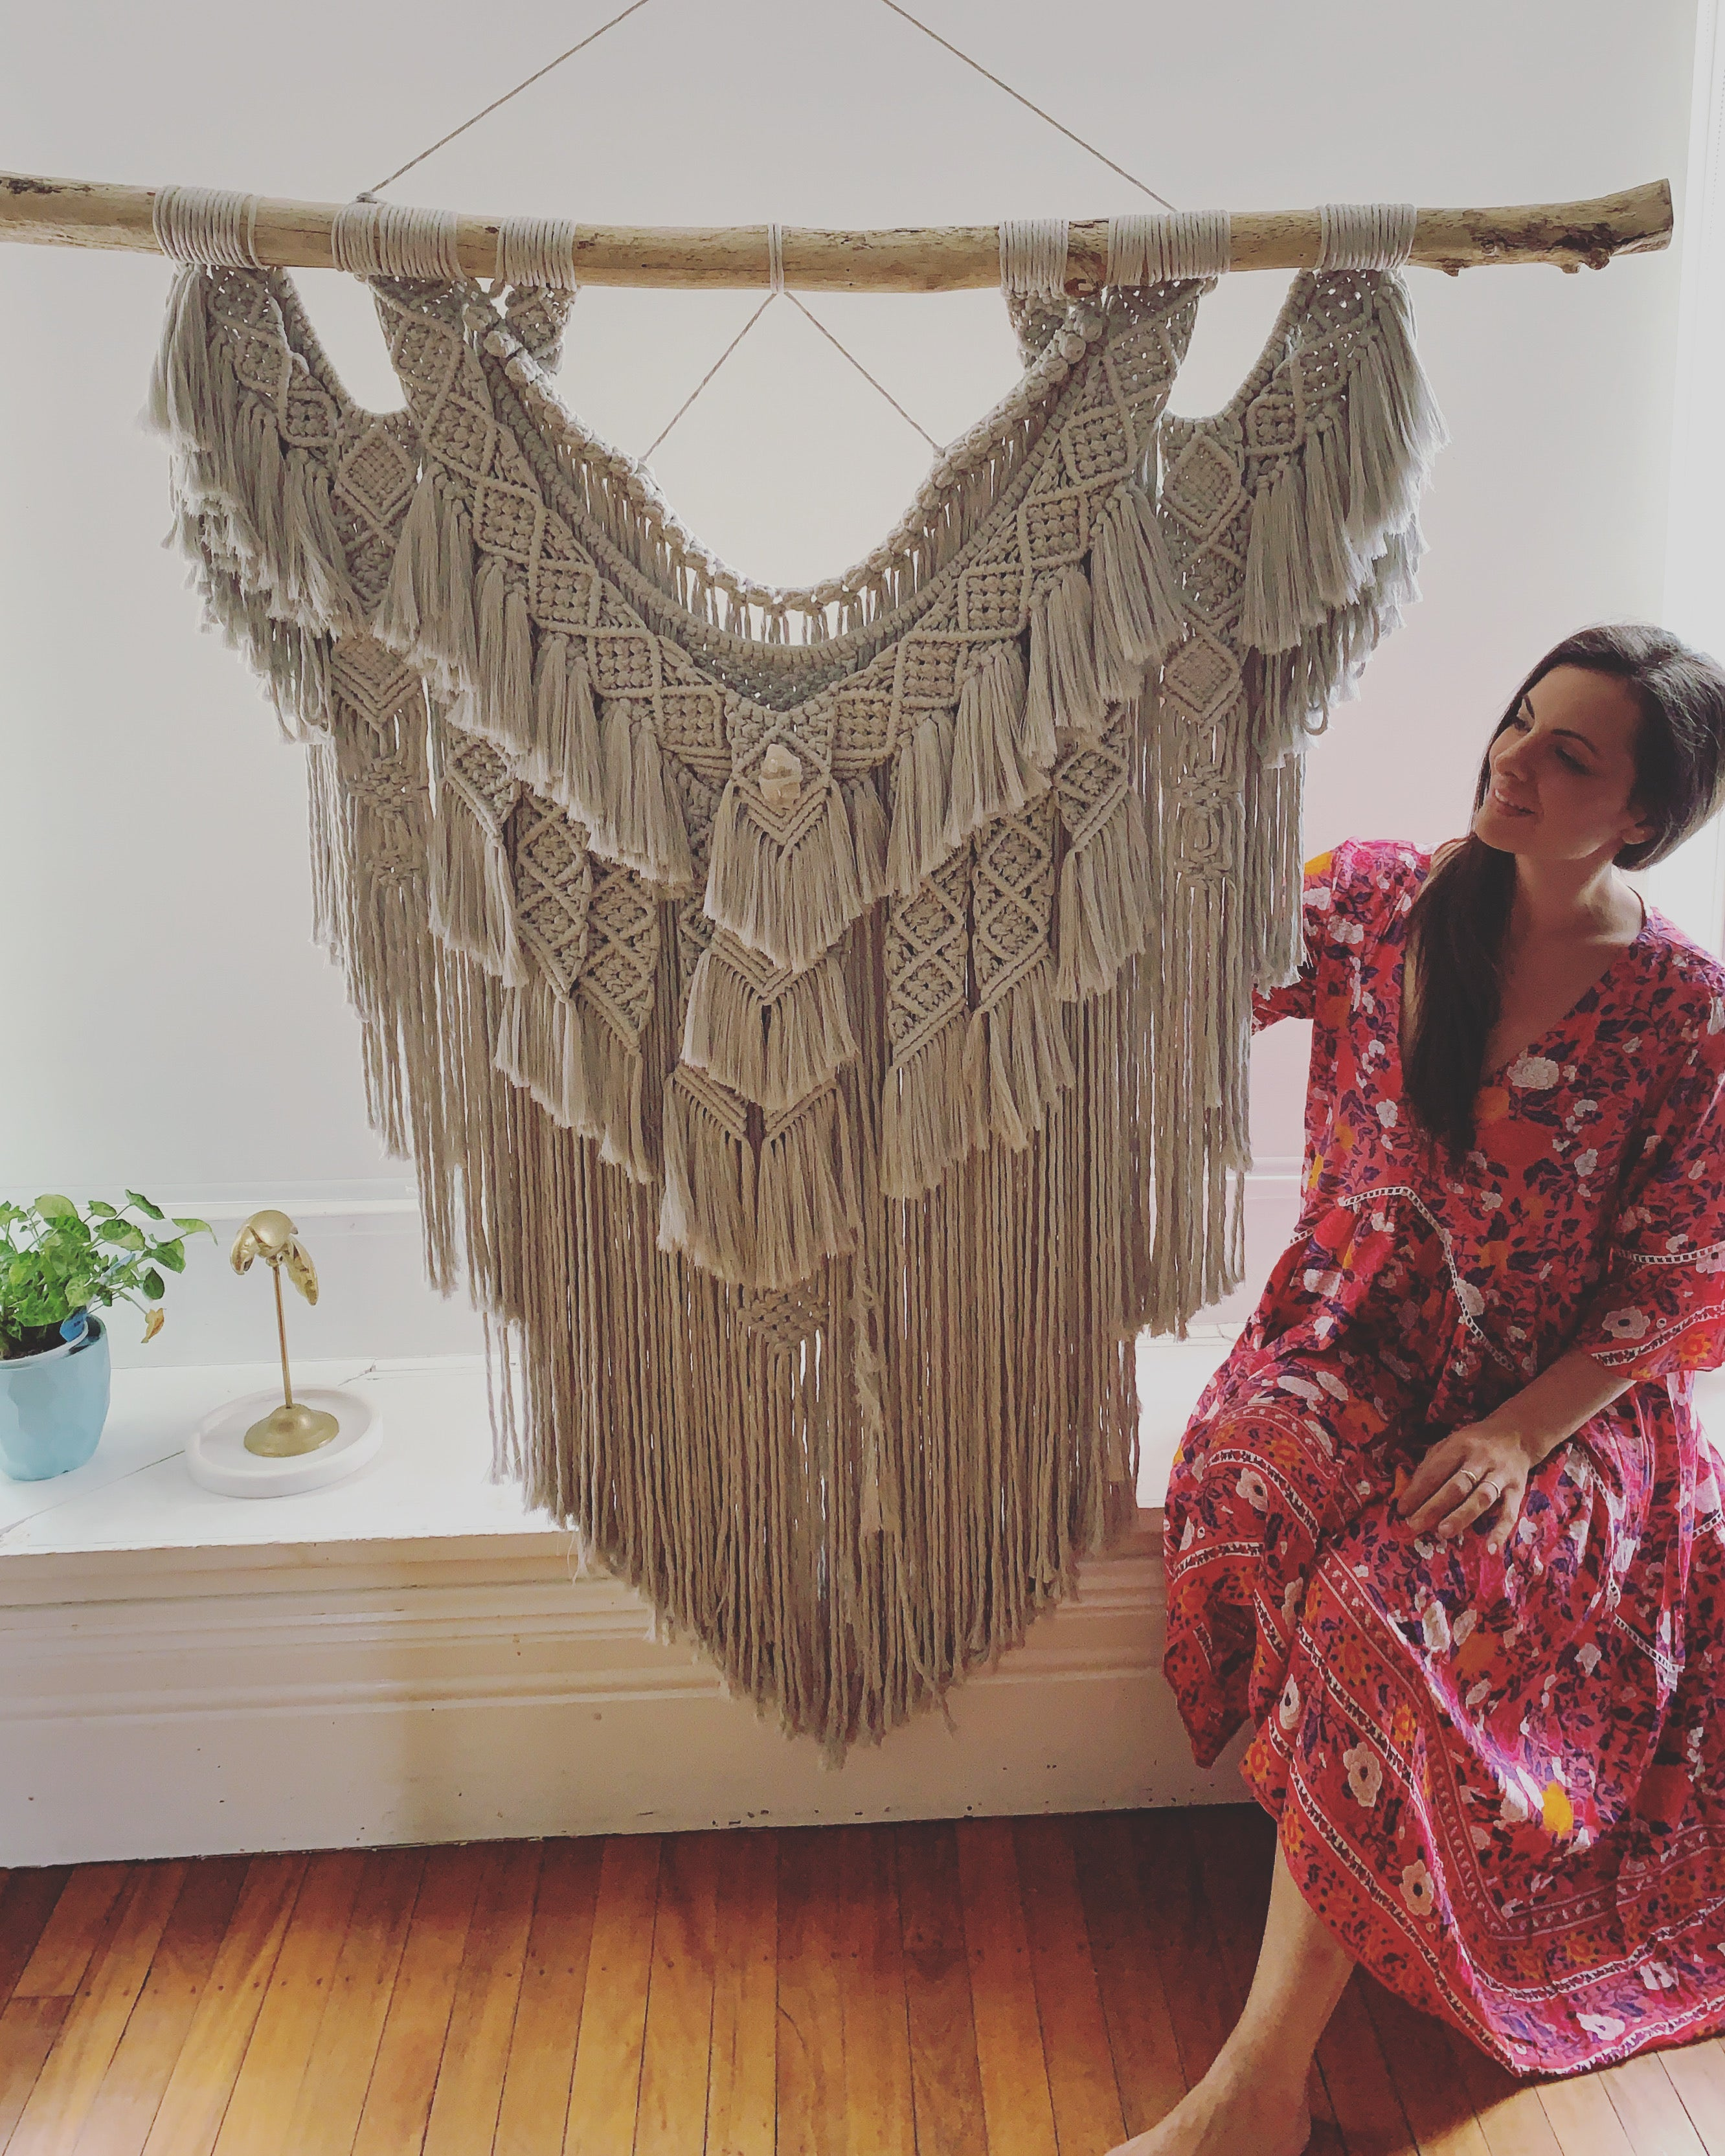 Where there's a will there's a way  - Custom made Macramé Wall Hanger